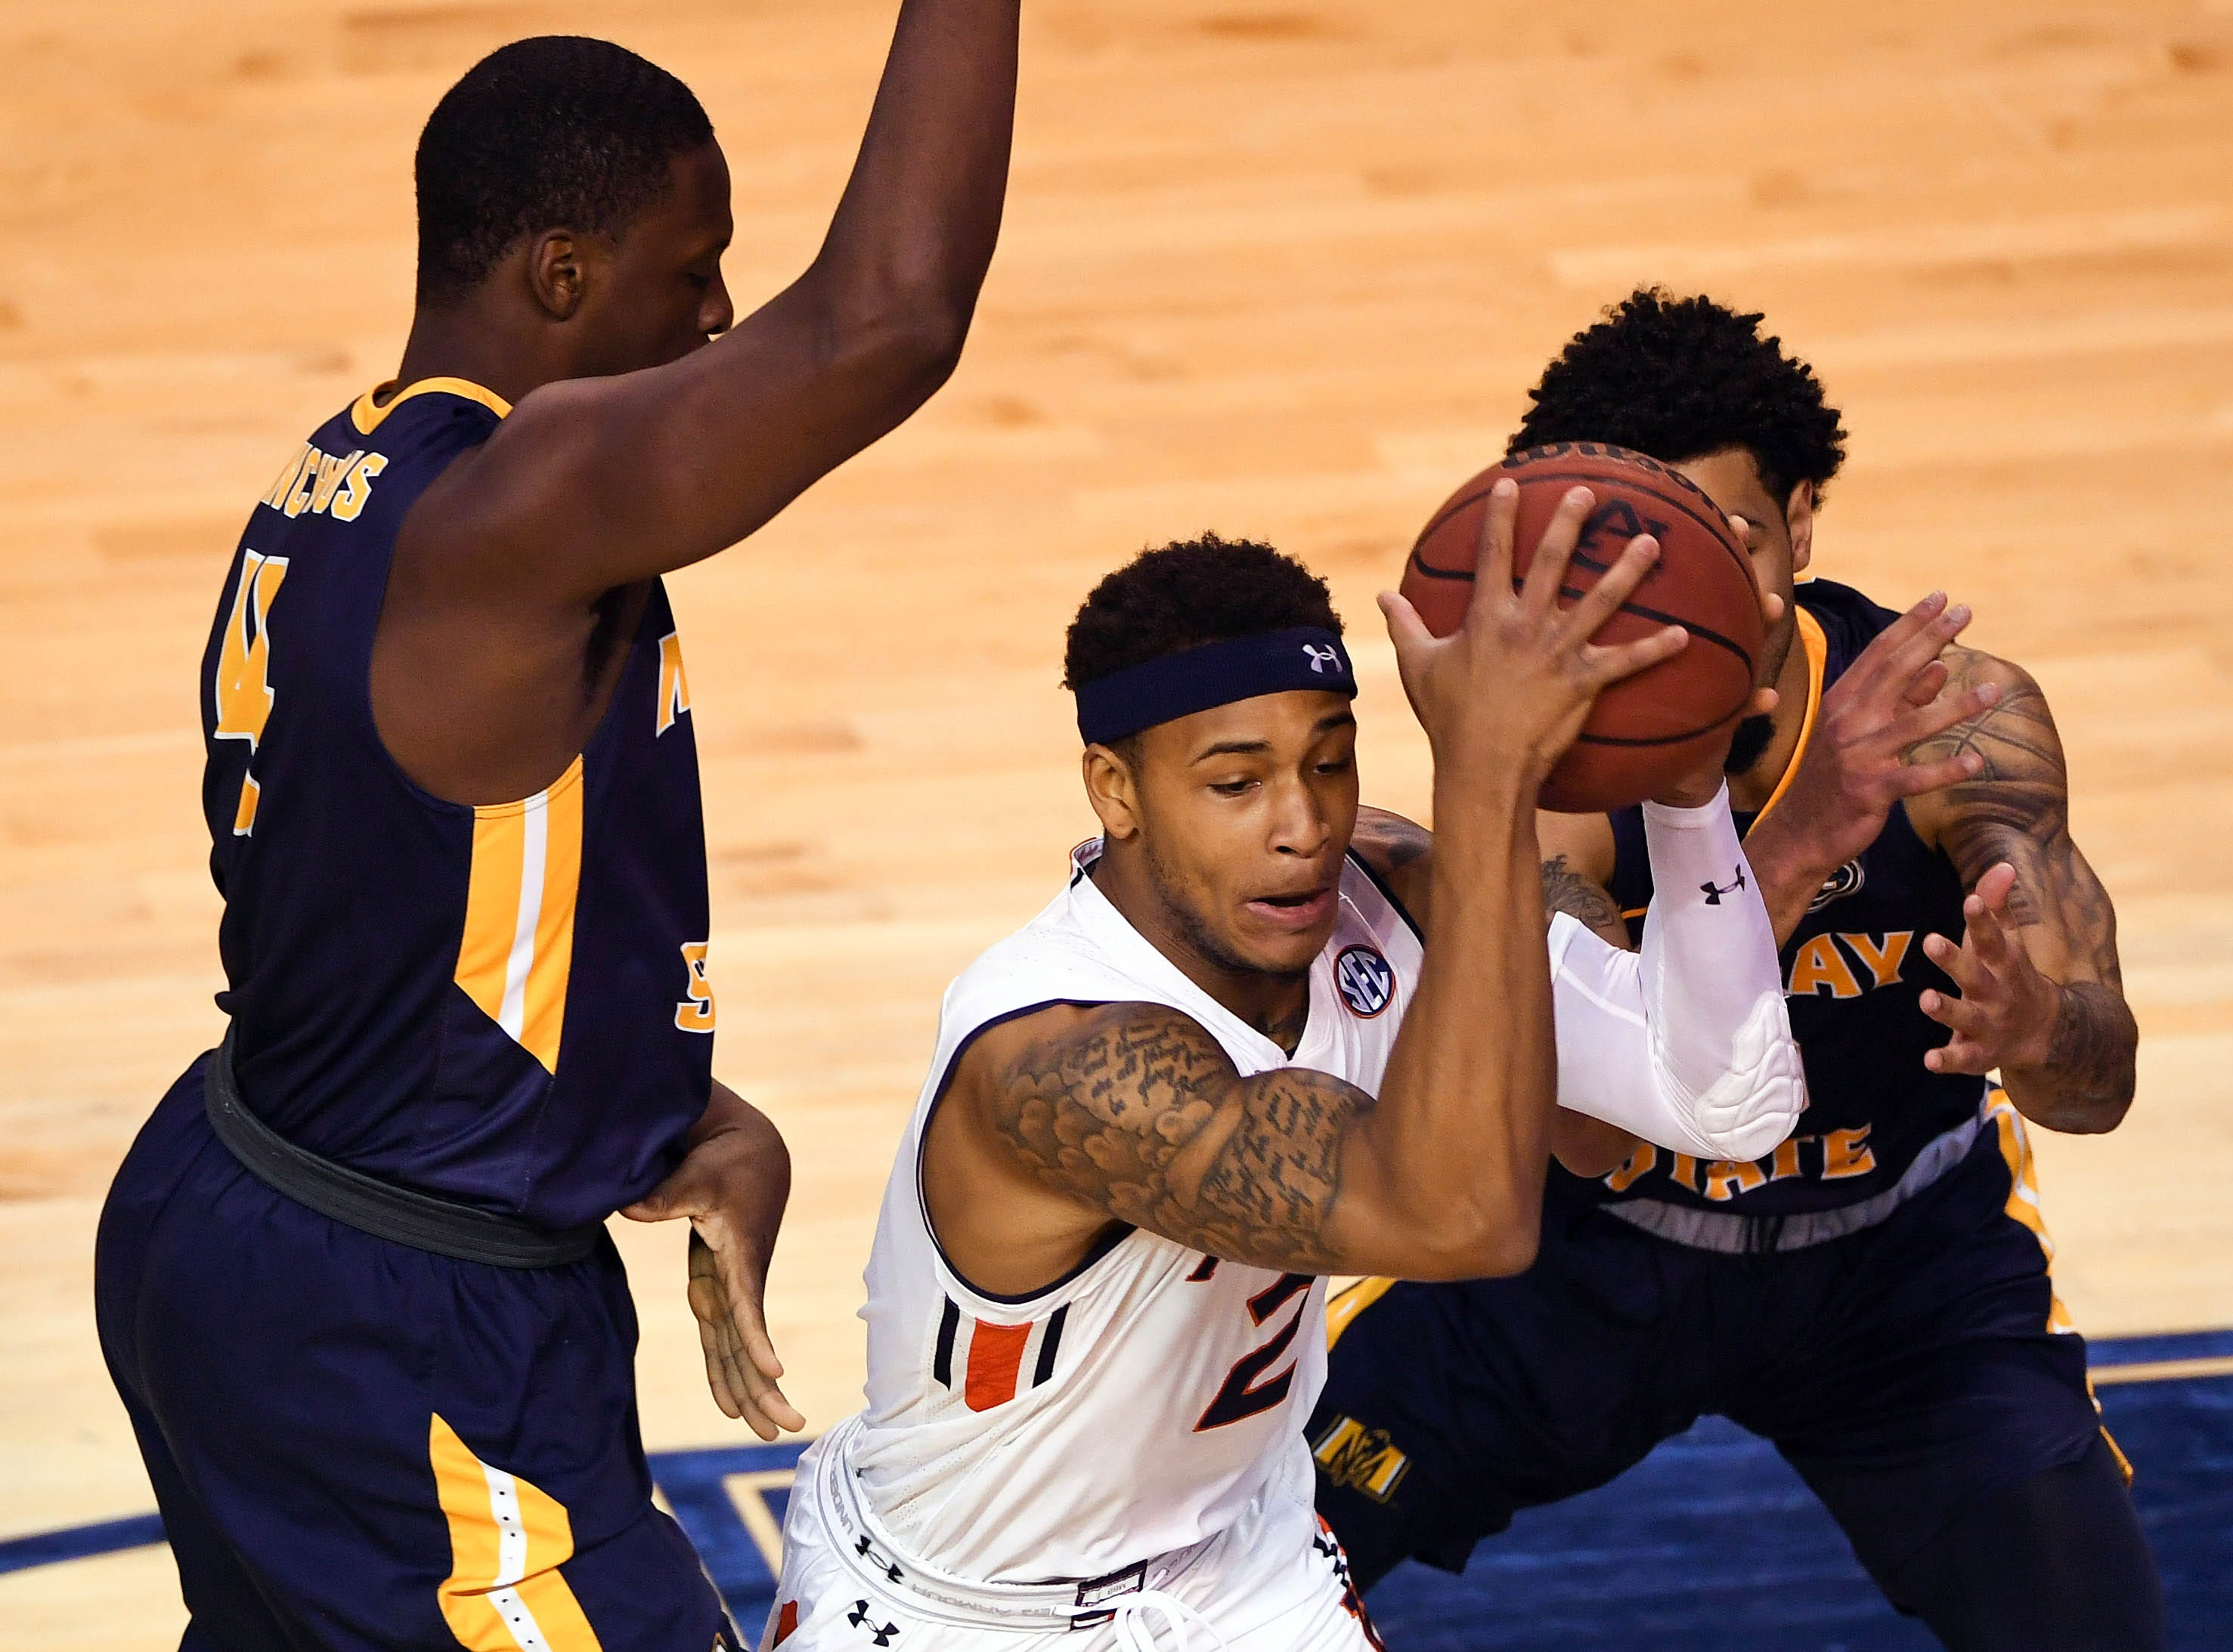 Dec 22, 2018; Auburn, AL, USA; Auburn Tigers guard Bryce Brown (2) is defended by Murray State Racers forward Brion Sanchious (4) and guard Tevin Brown (background) during the first half at Auburn Arena. Mandatory Credit: Shanna Lockwood-USA TODAY Sports